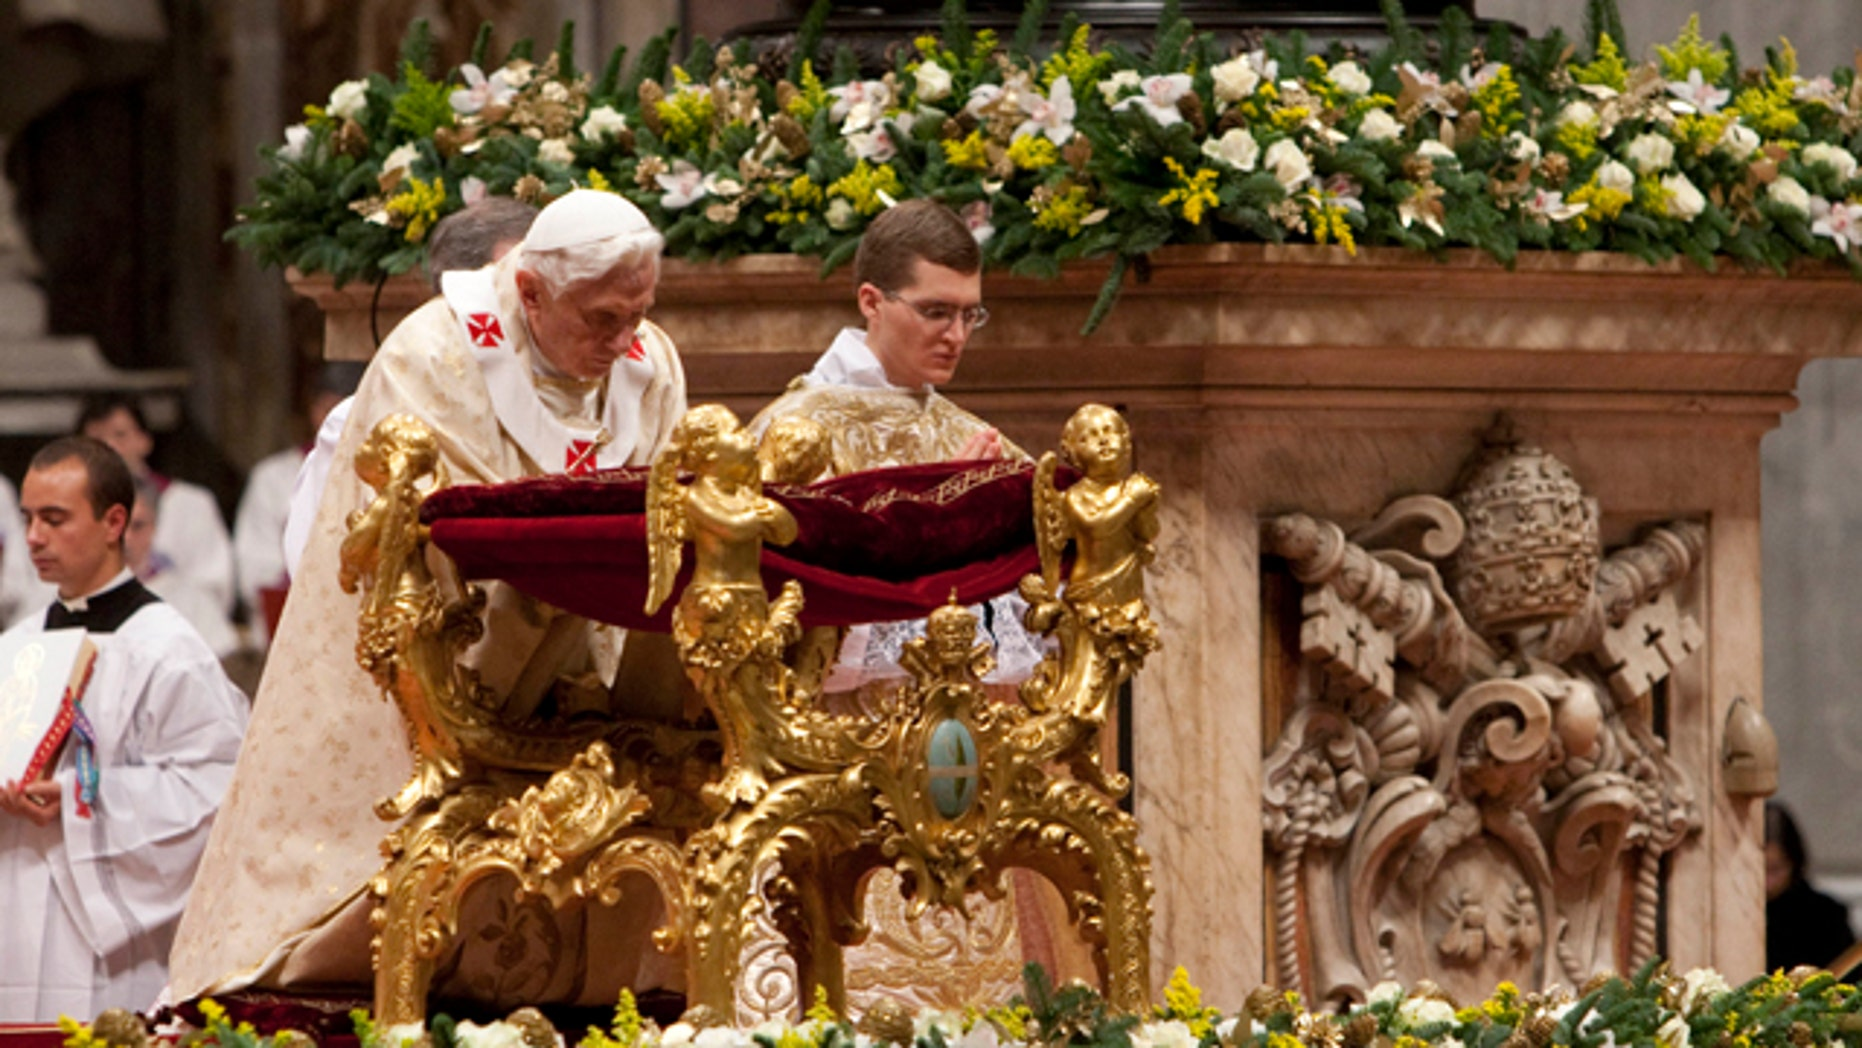 Dec. 24, 2011: Pope Benedict XVI kneels in prayer as he celebrates Christmas Mass in St. Peter's Basilica at the Vatican.